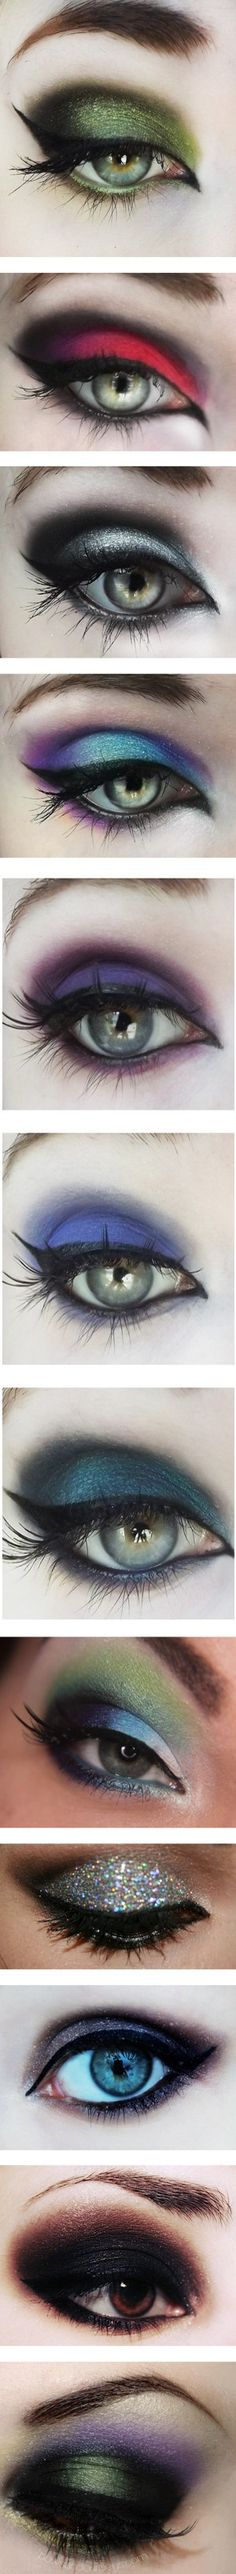 """Eye Makeup ~^u^~"" by cky96 ❤️ liked on Polyvore"